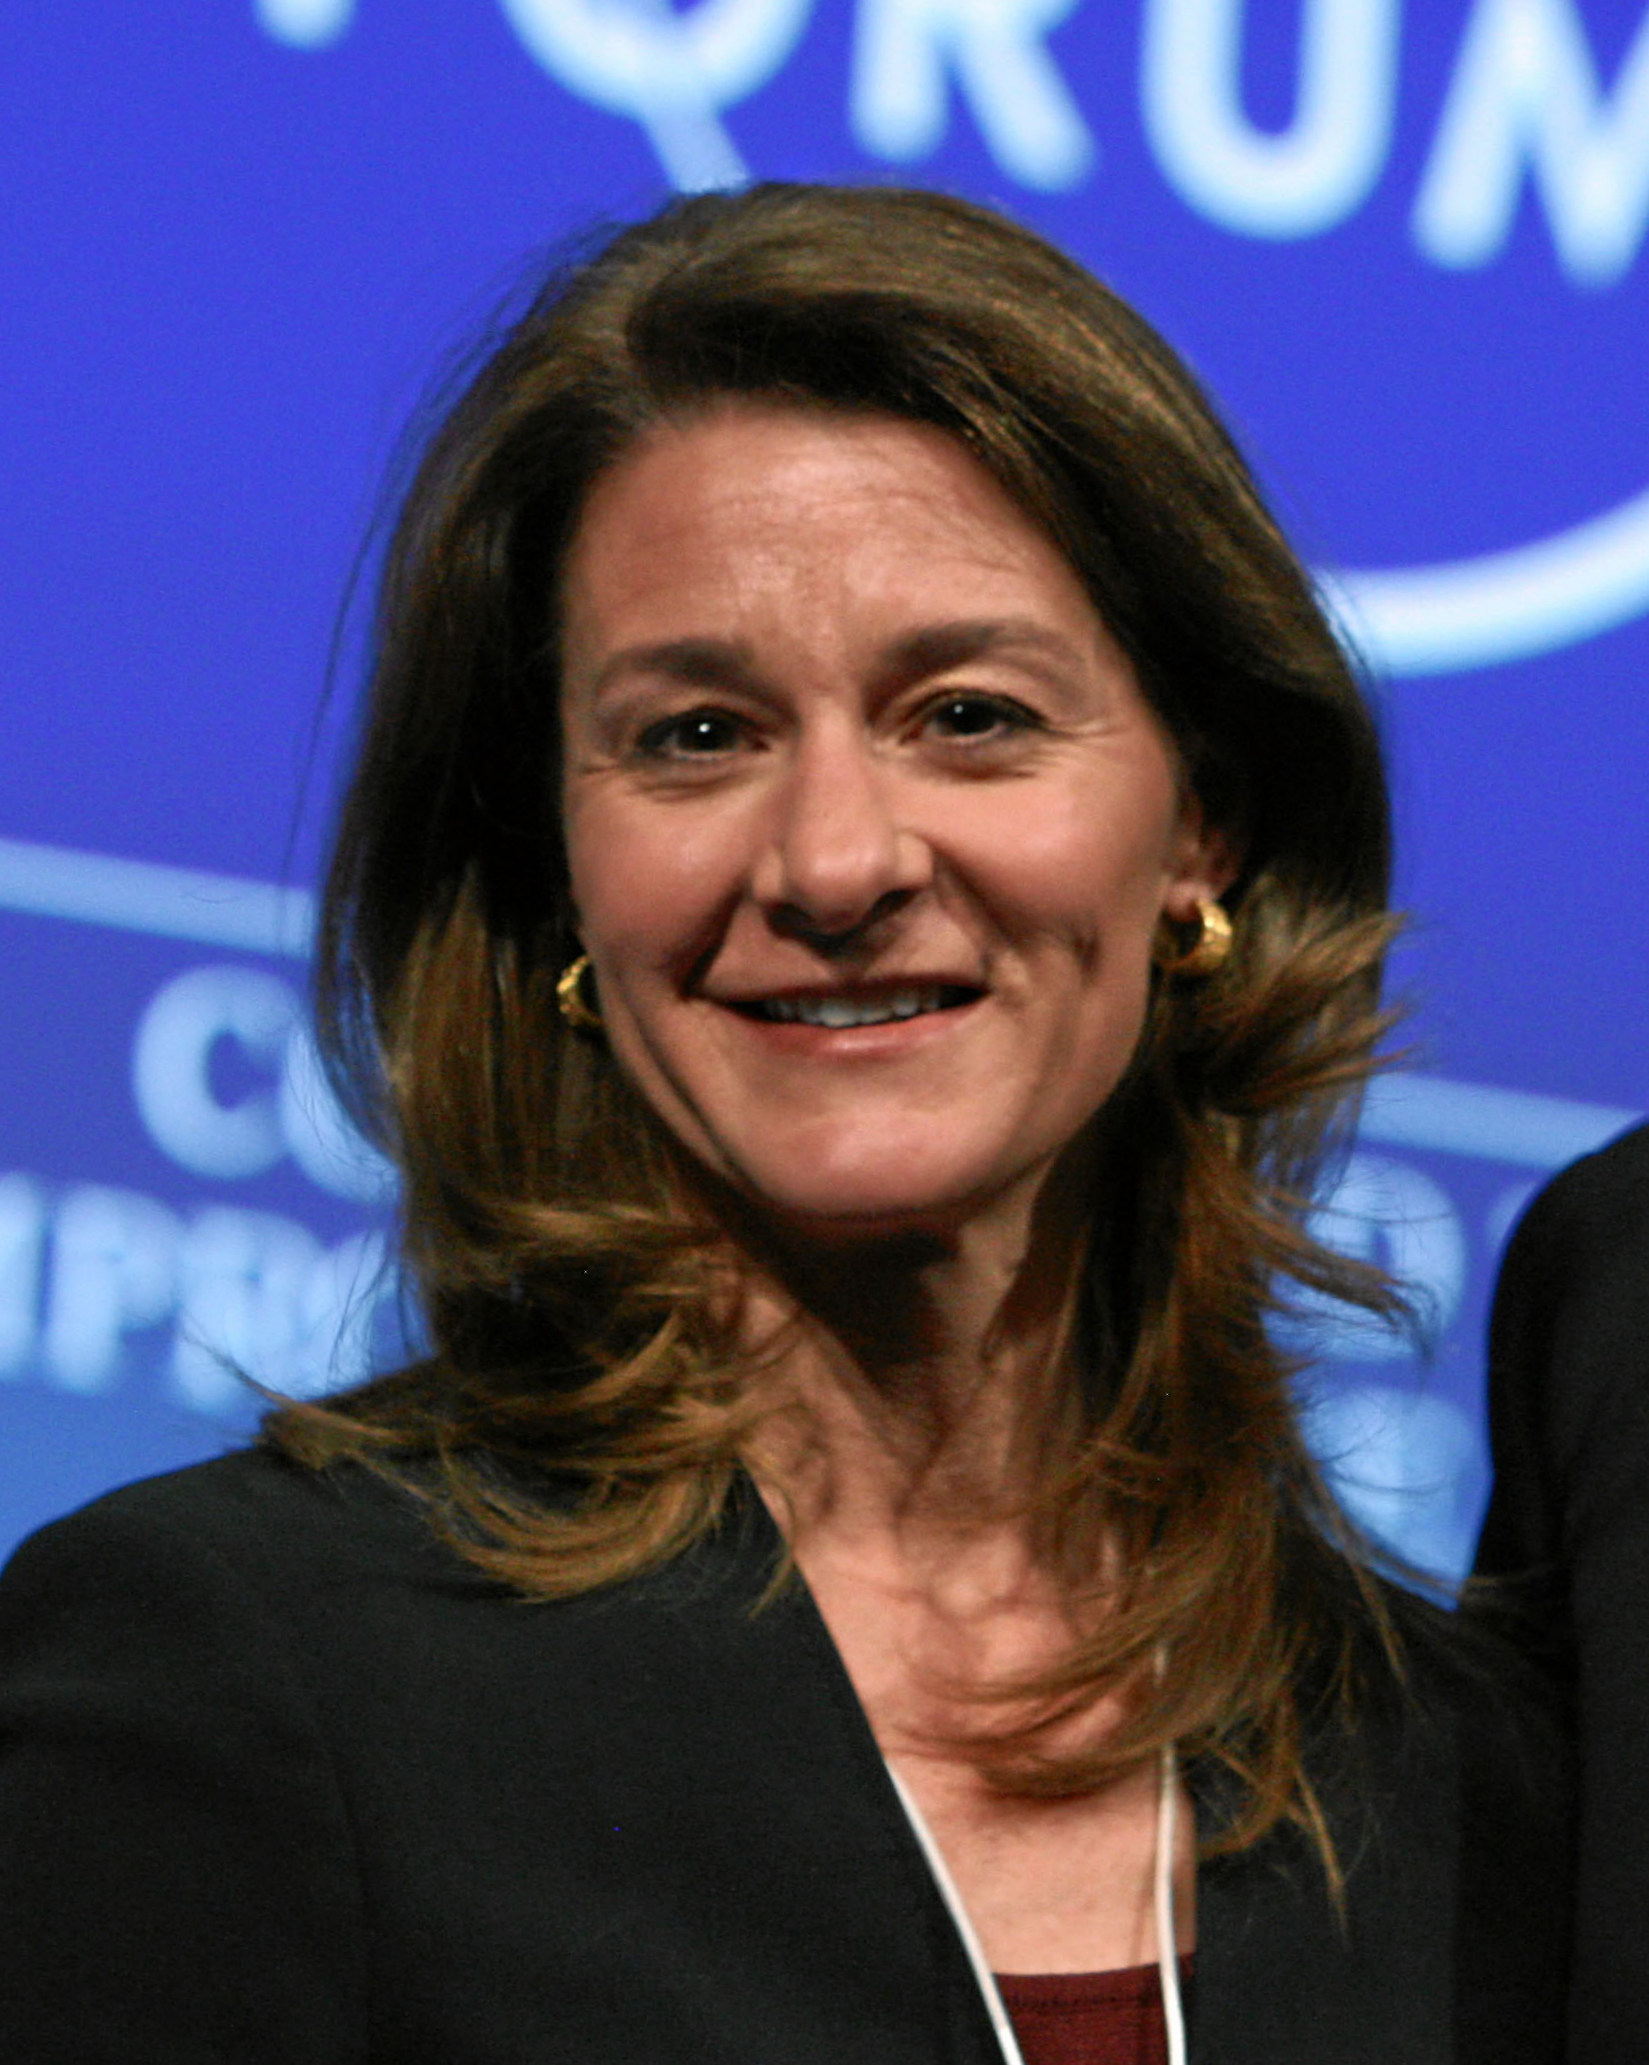 The 52-year old daughter of father Raymond Joseph French Jr. and mother Elaine Agnes Amerland, 175 cm tall Melinda Gates in 2017 photo